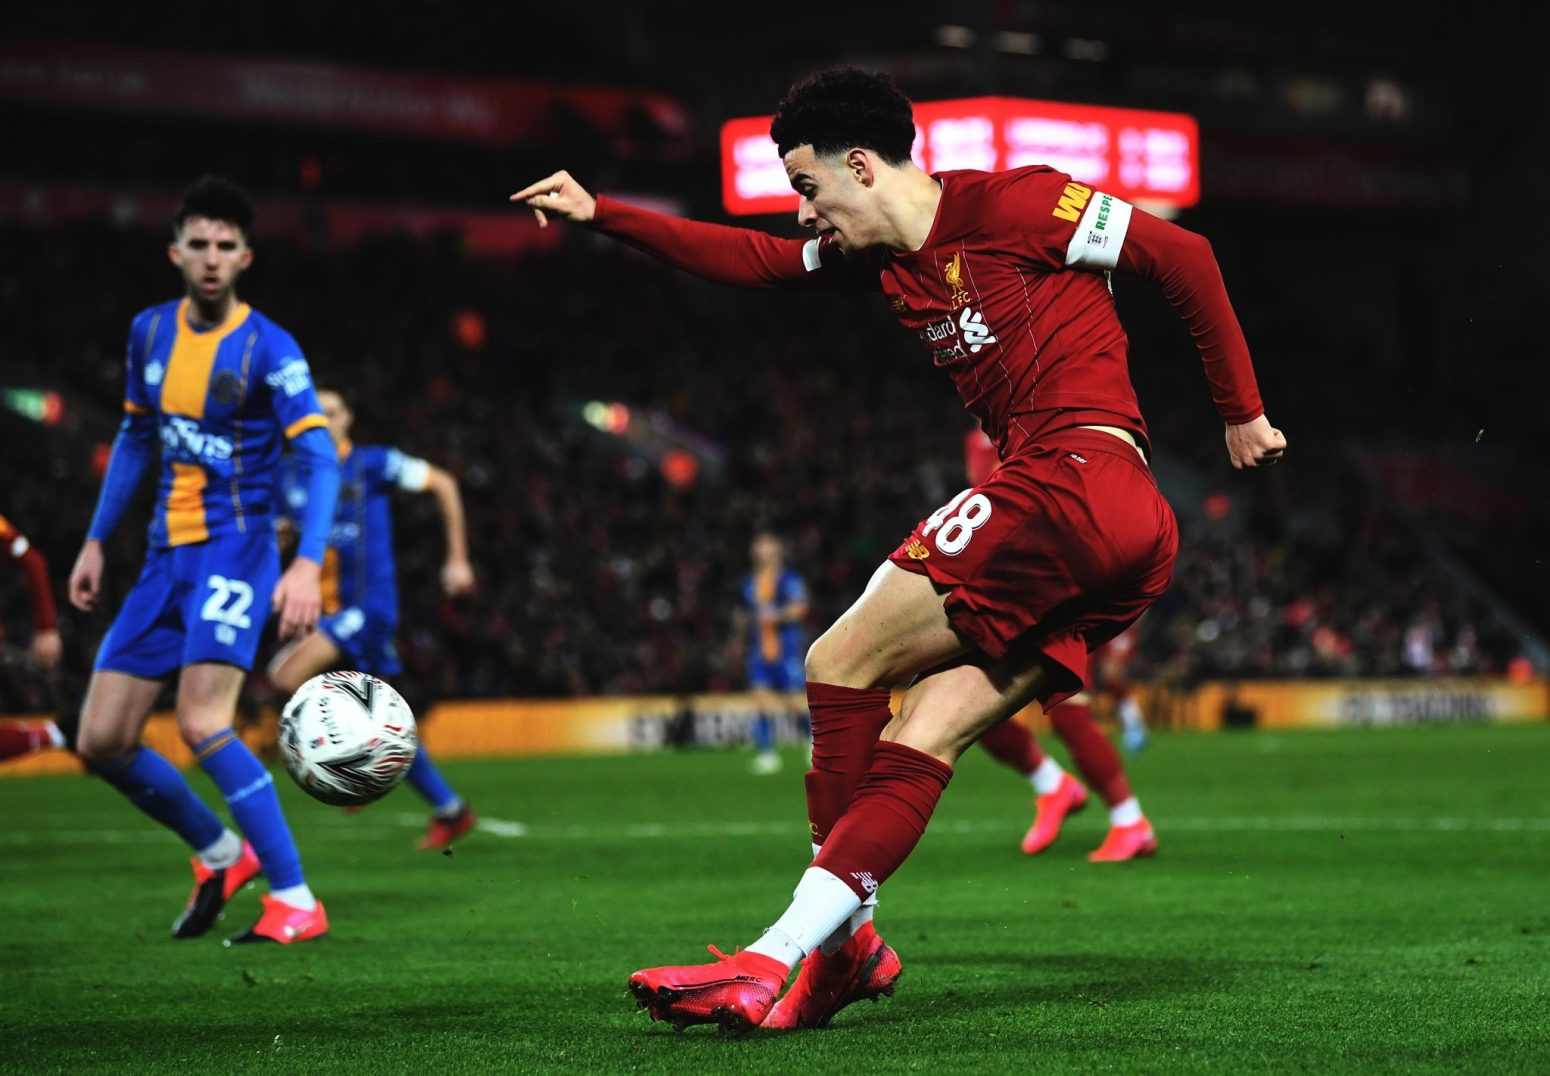 Liverpool 1-0 Shrewsbury Town: Highlights (Video)